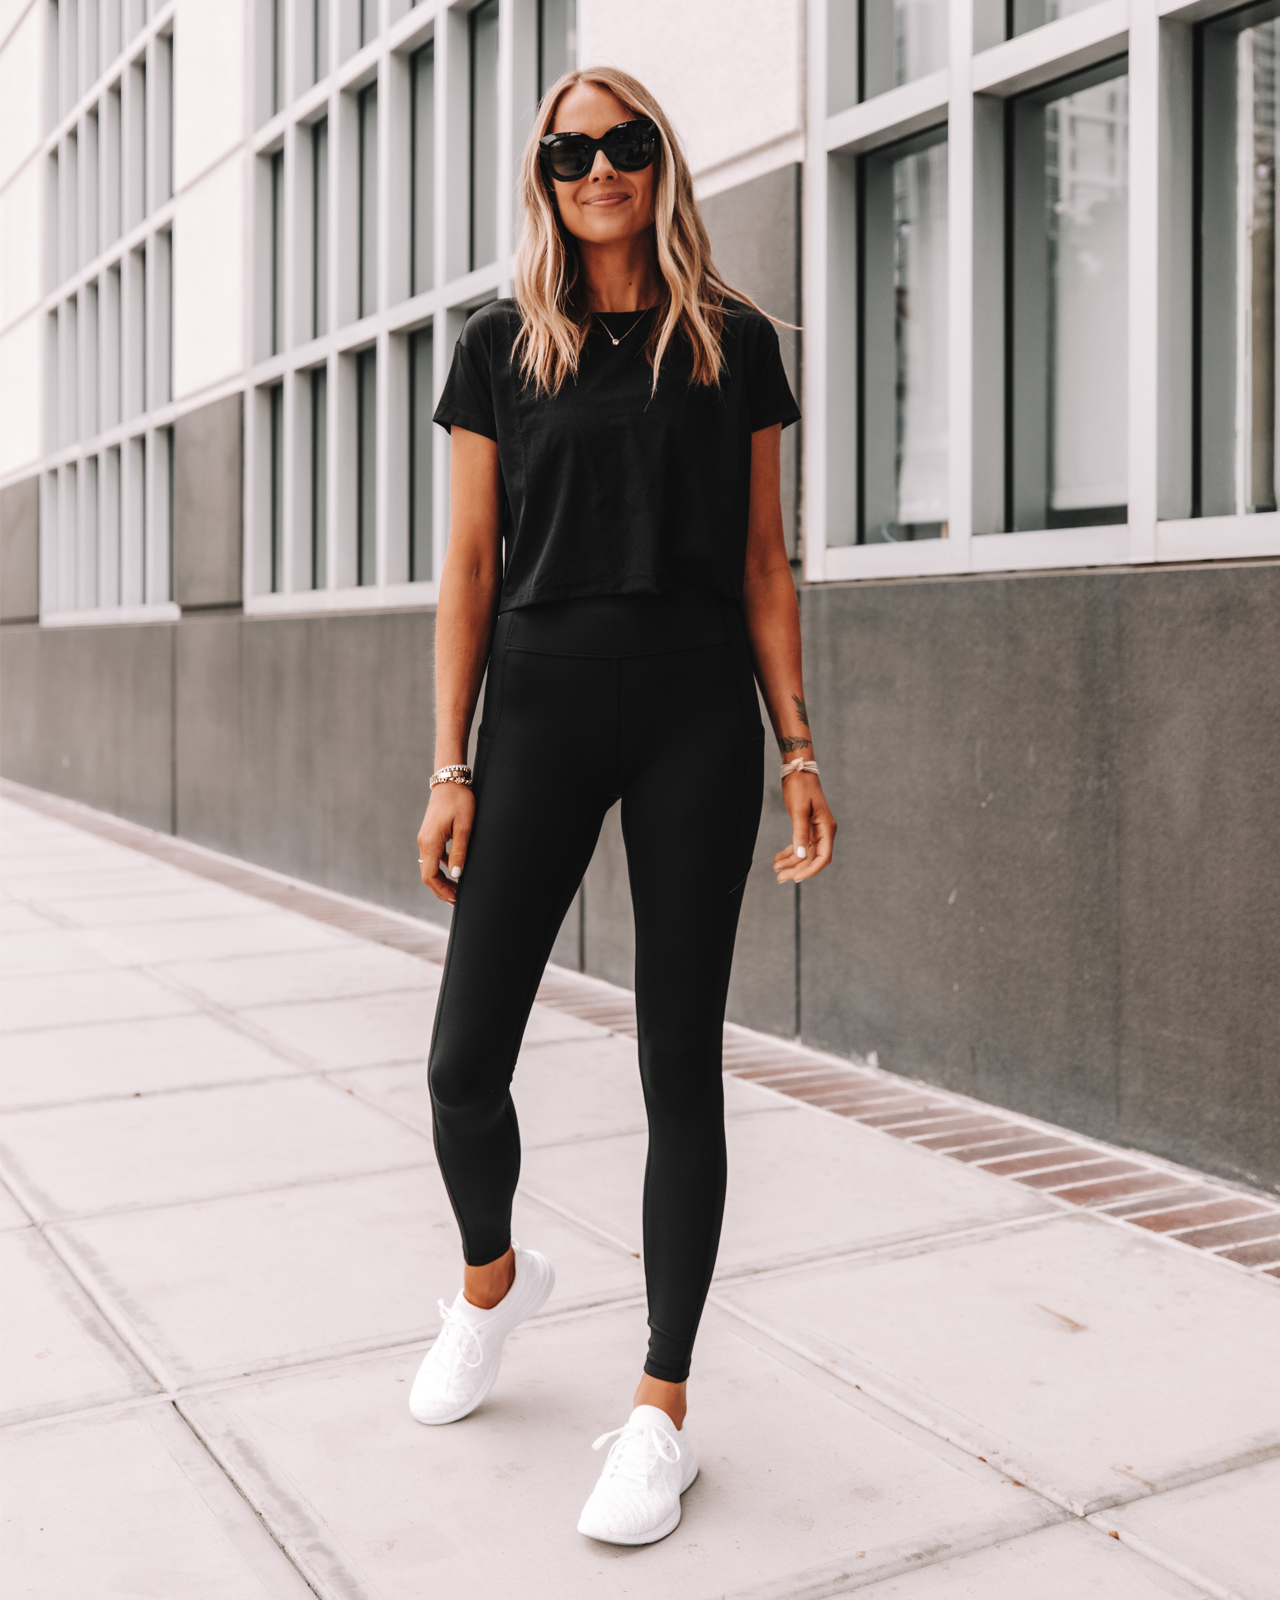 Fashion Jackson Wearing lululemon Speed Up Tights Black Leggings Black Workout Top APL White Sneakers